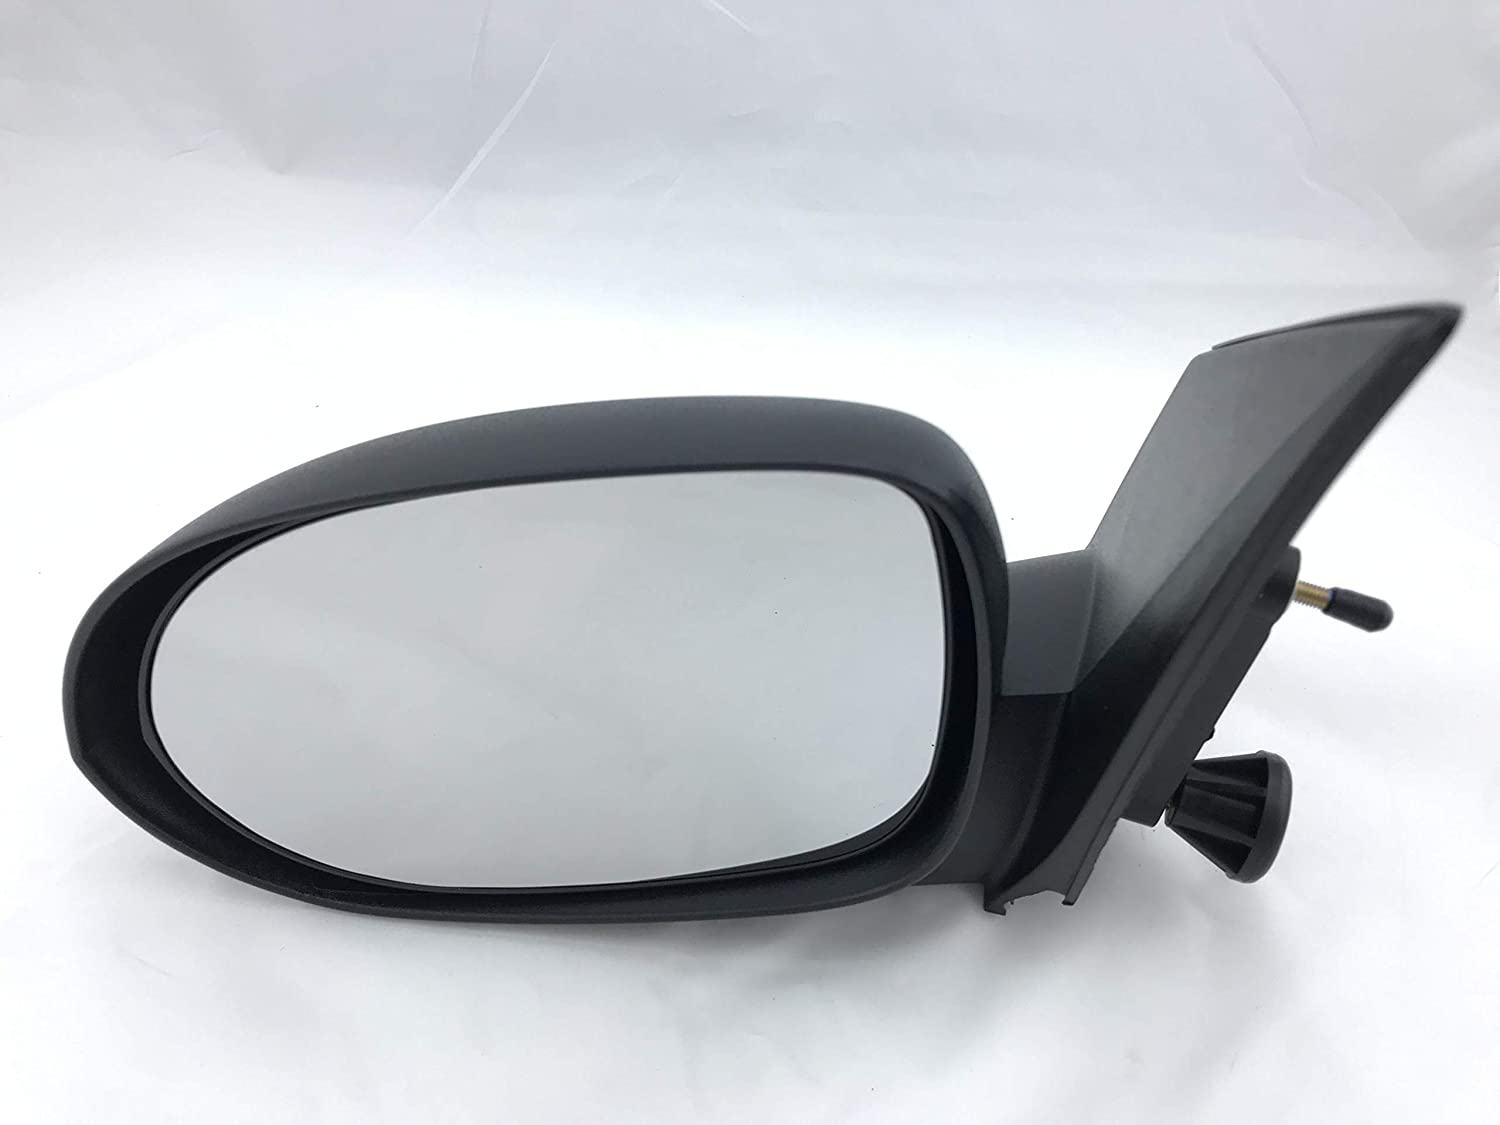 OE: CH1320264 TEXTURED | Left Outside Rear View Mirror Parts Link #: 5115037AC Passenger Side Mirror for DODGE CALIBER 07-12 N-FLD MAN MIR LH